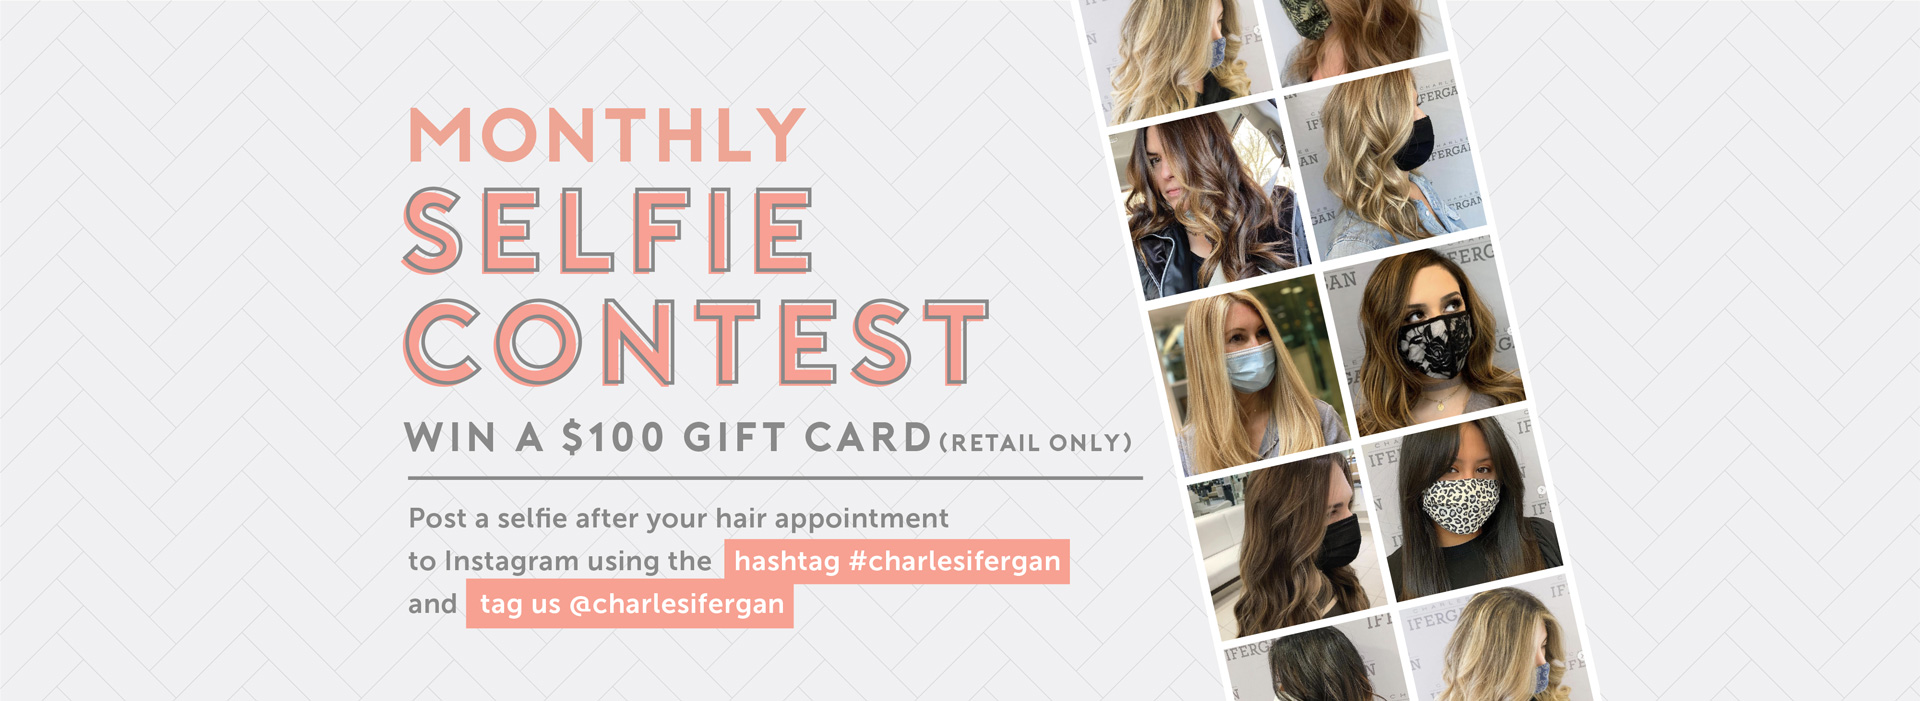 Monthly Selfie Contest - Win a $100 Gift Card (Retail Only)